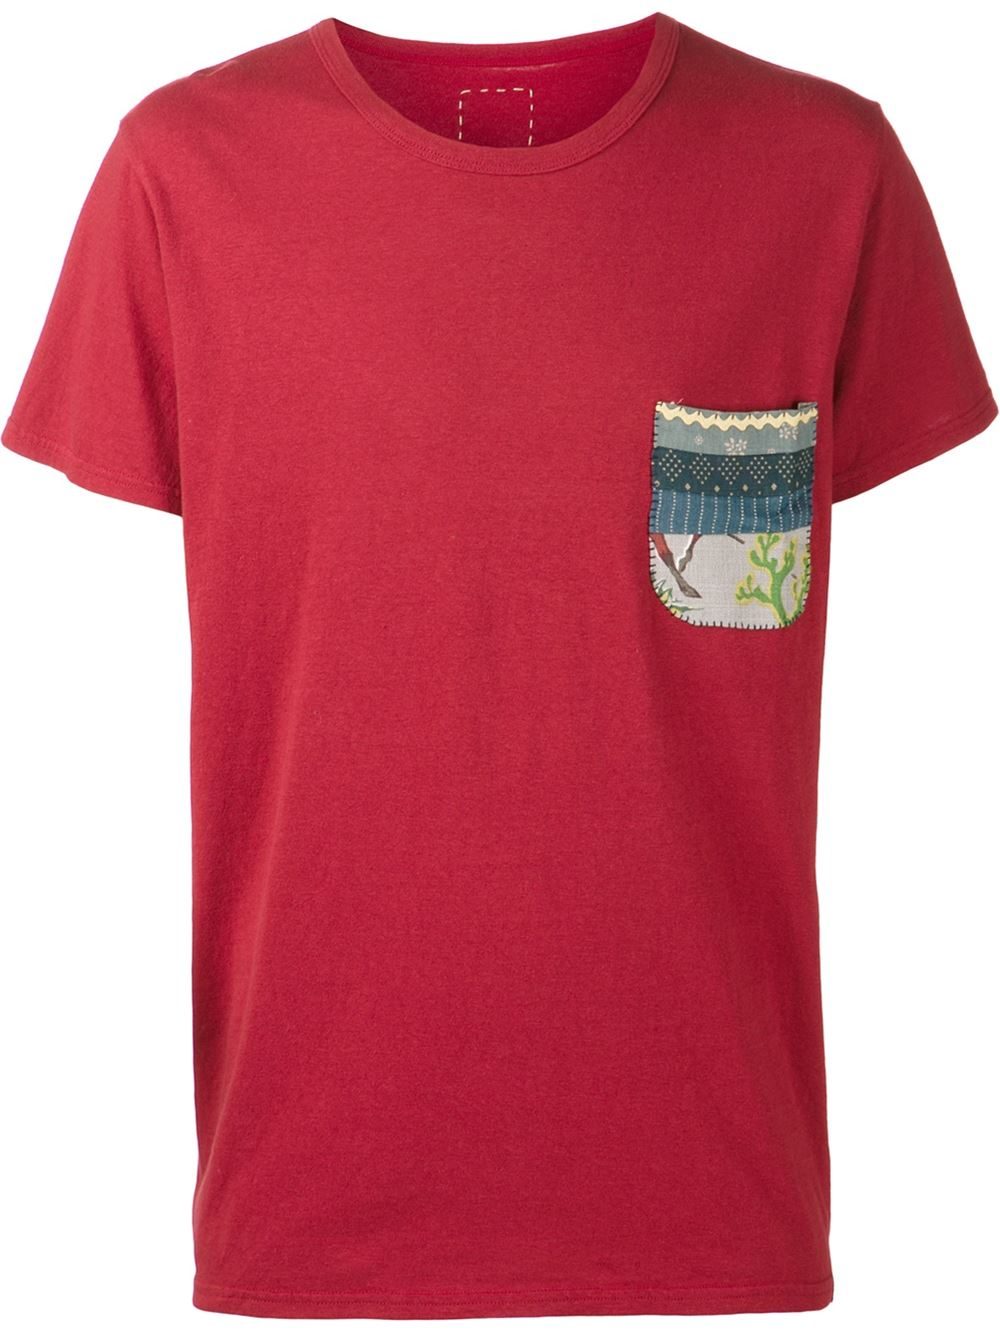 Lyst visvim print pocket t shirt in red for men for Pocket t shirt printing